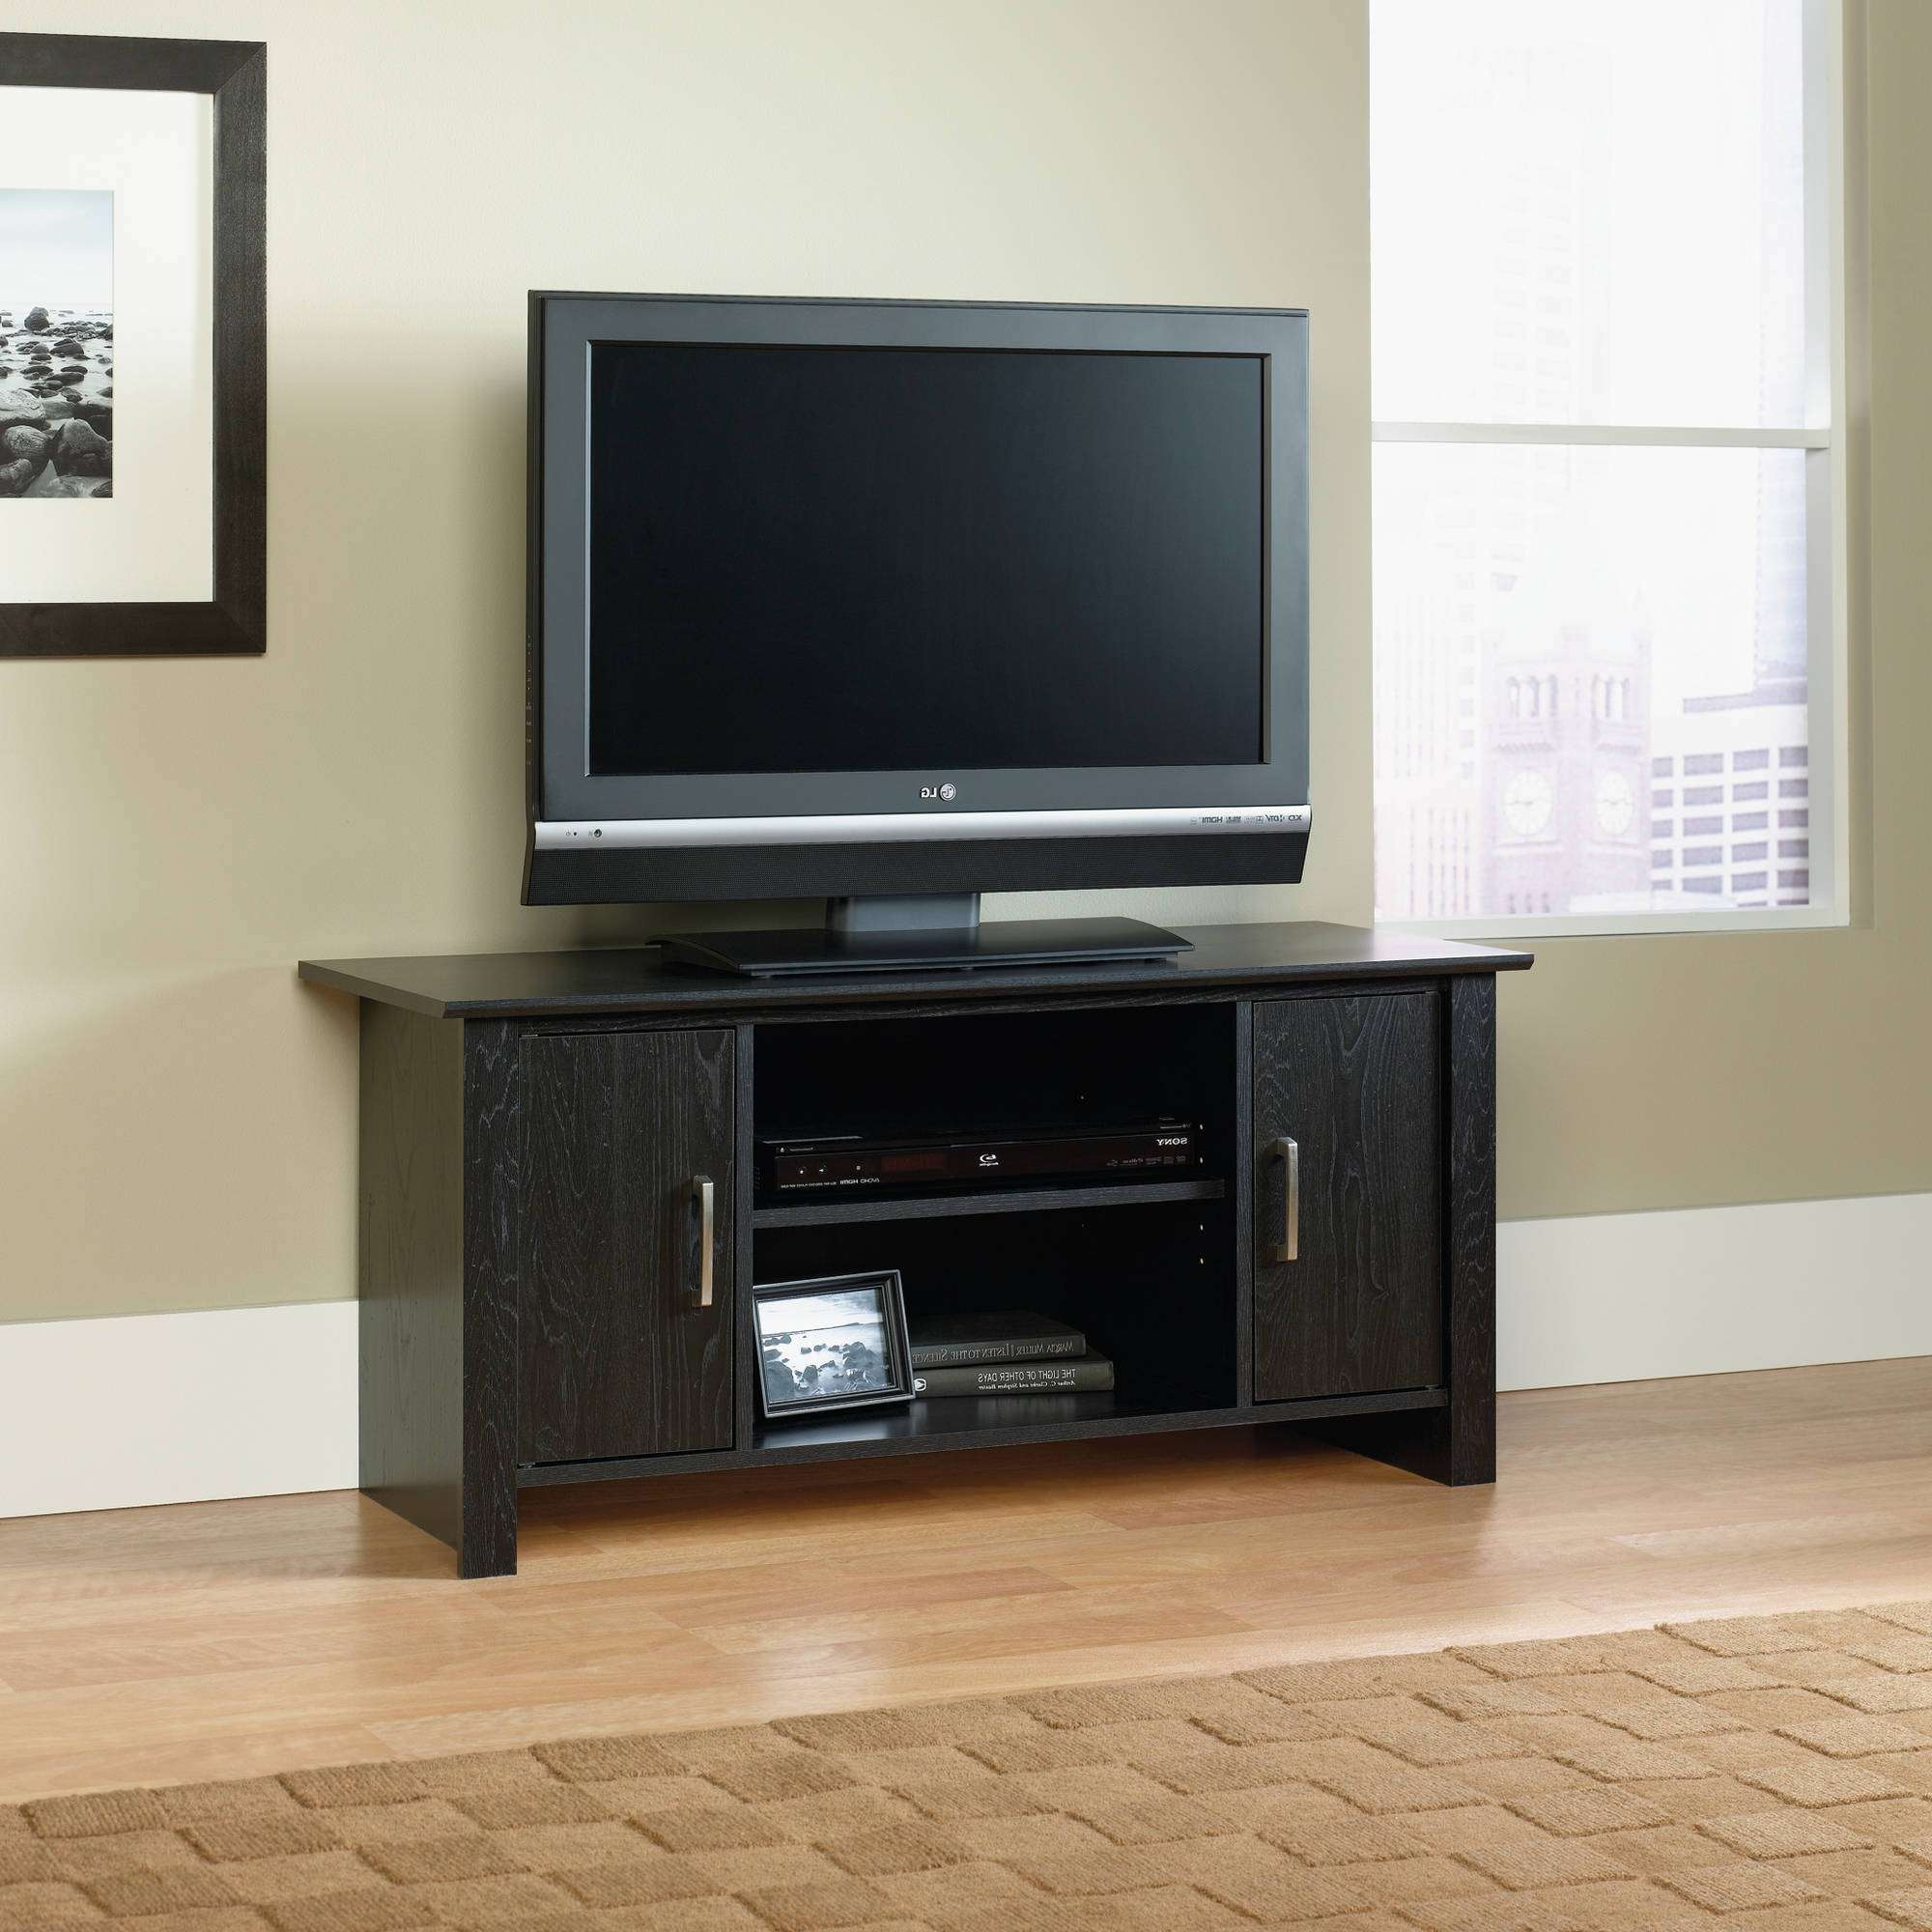 Fancy Tv Stands For 60 Inch Flat Screen 67 With Additional Modern With Modern 60 Inch Tv Stands (View 9 of 20)